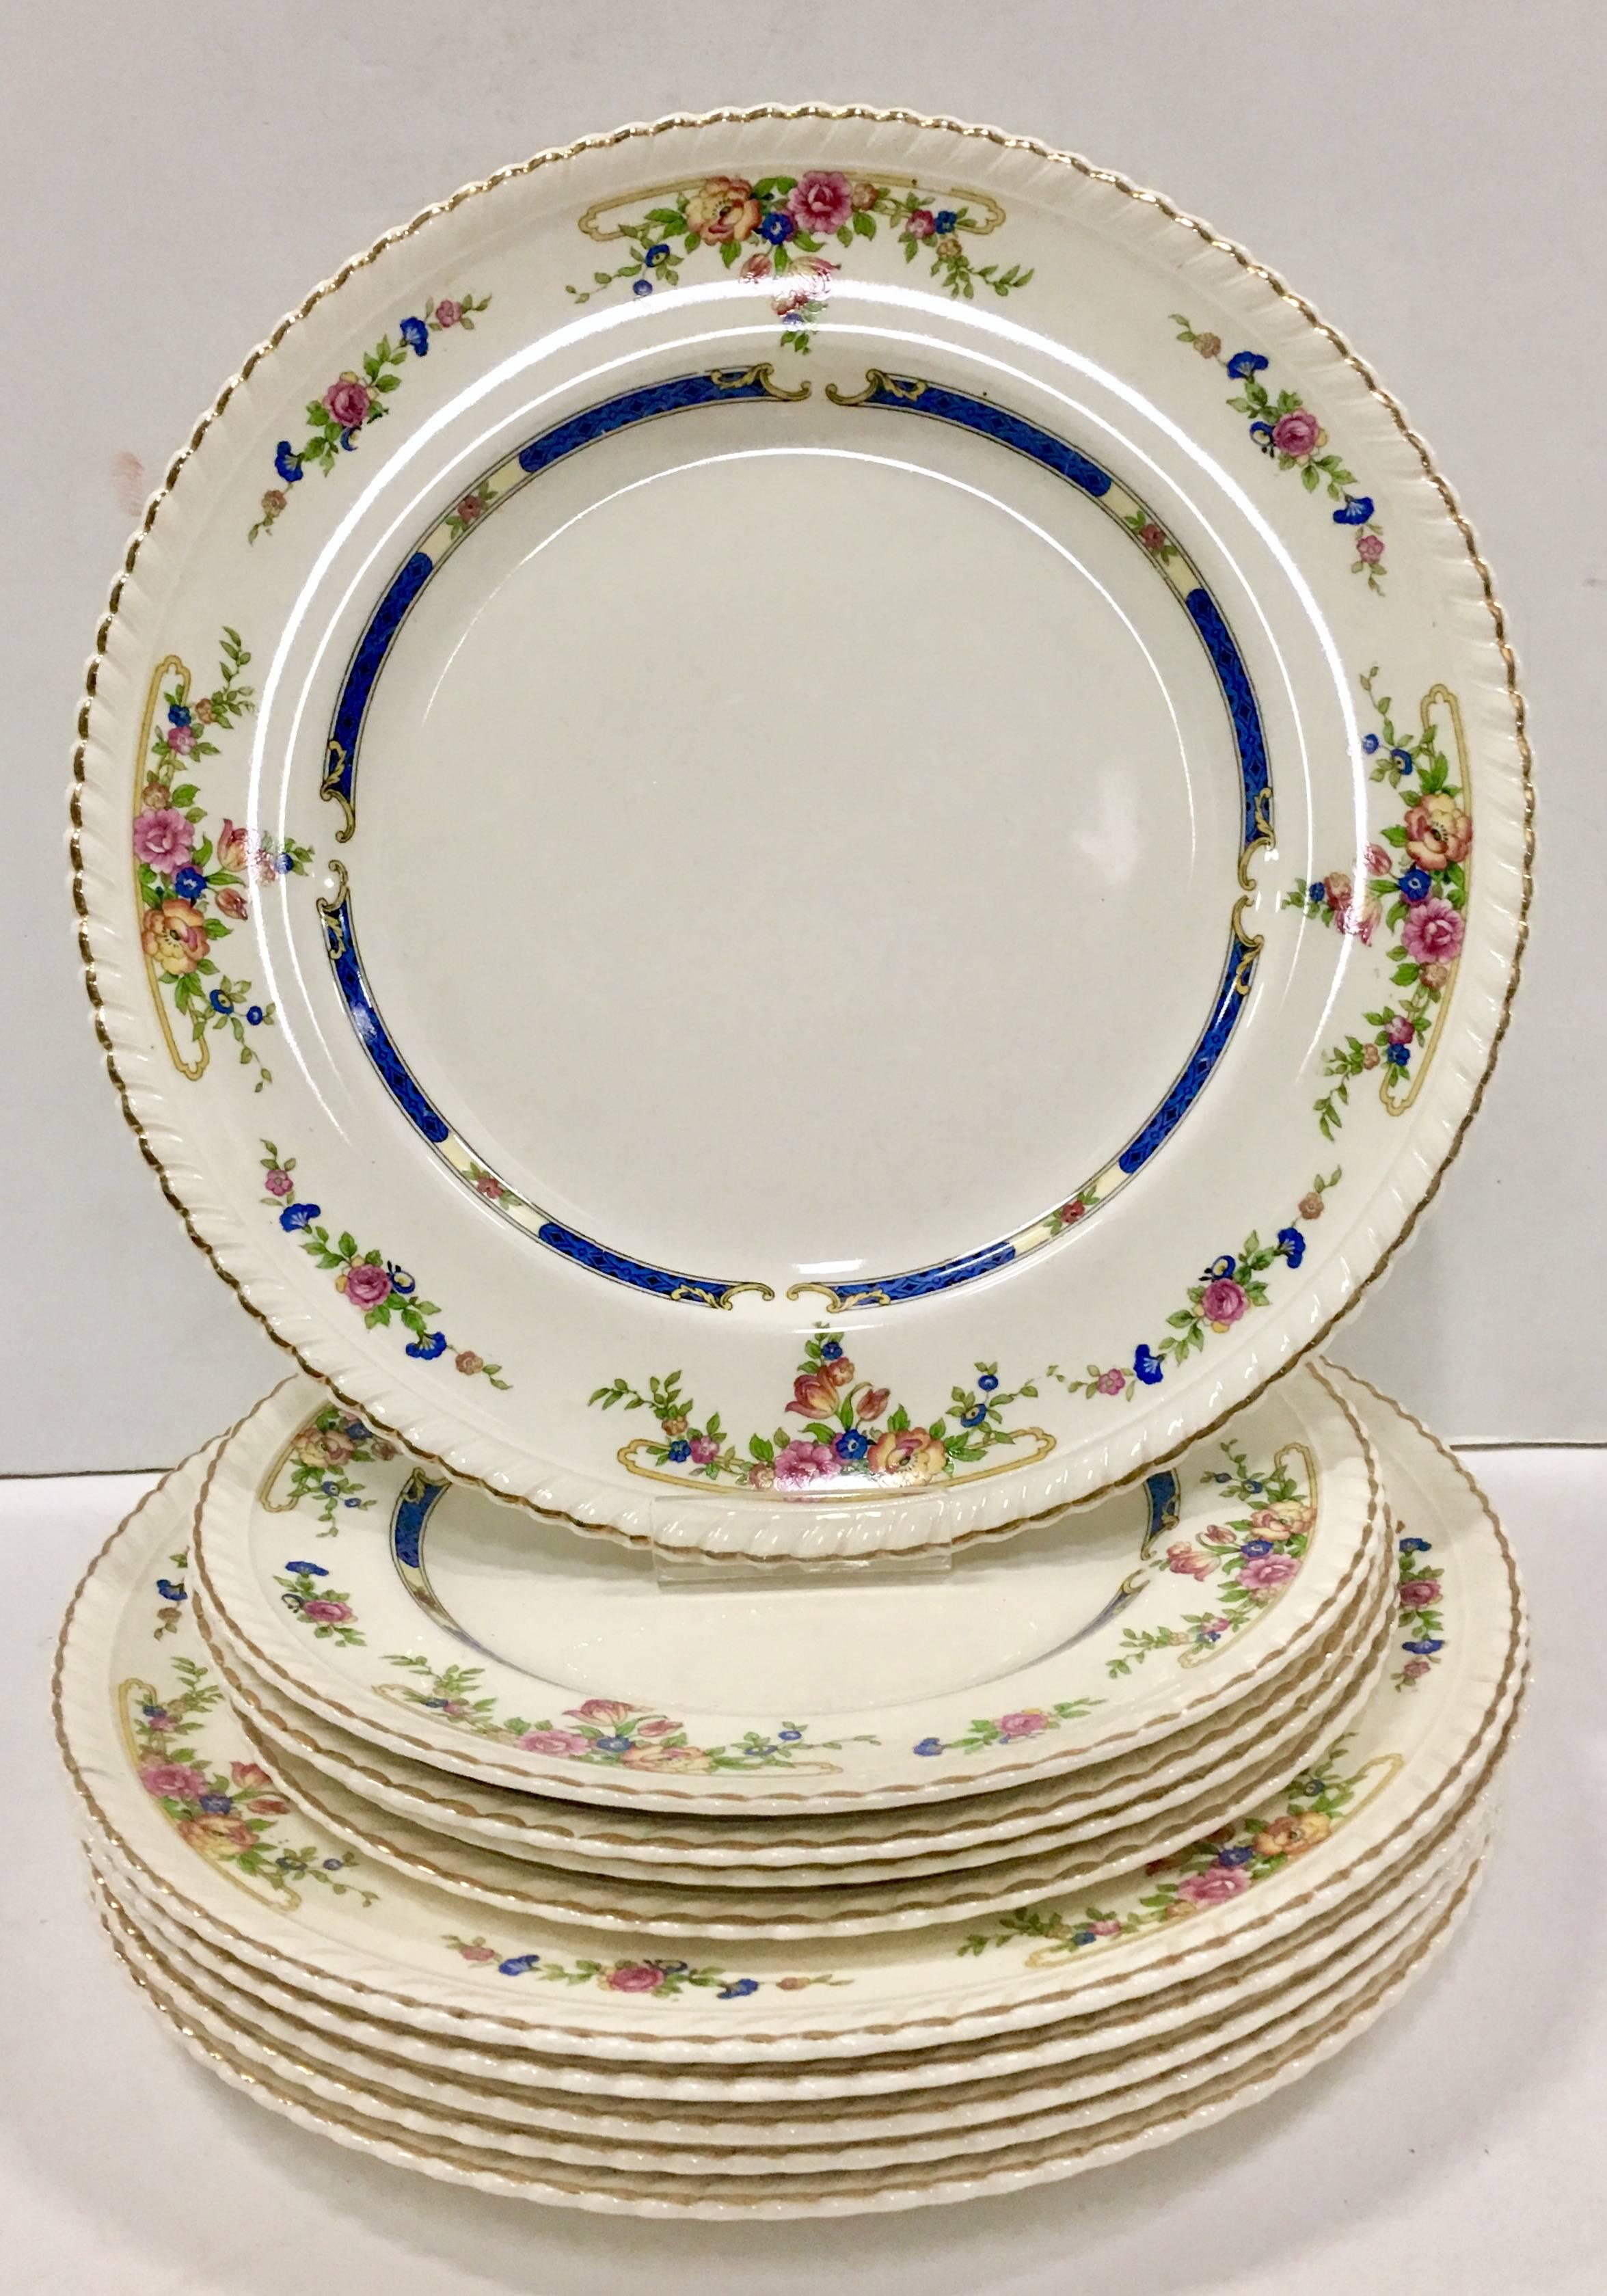 Antique English Porcelain Old English  Eastbourne  by Johnson Brothers S/21 For Sale at 1stdibs  sc 1 st  1stDibs & Antique English Porcelain Old English